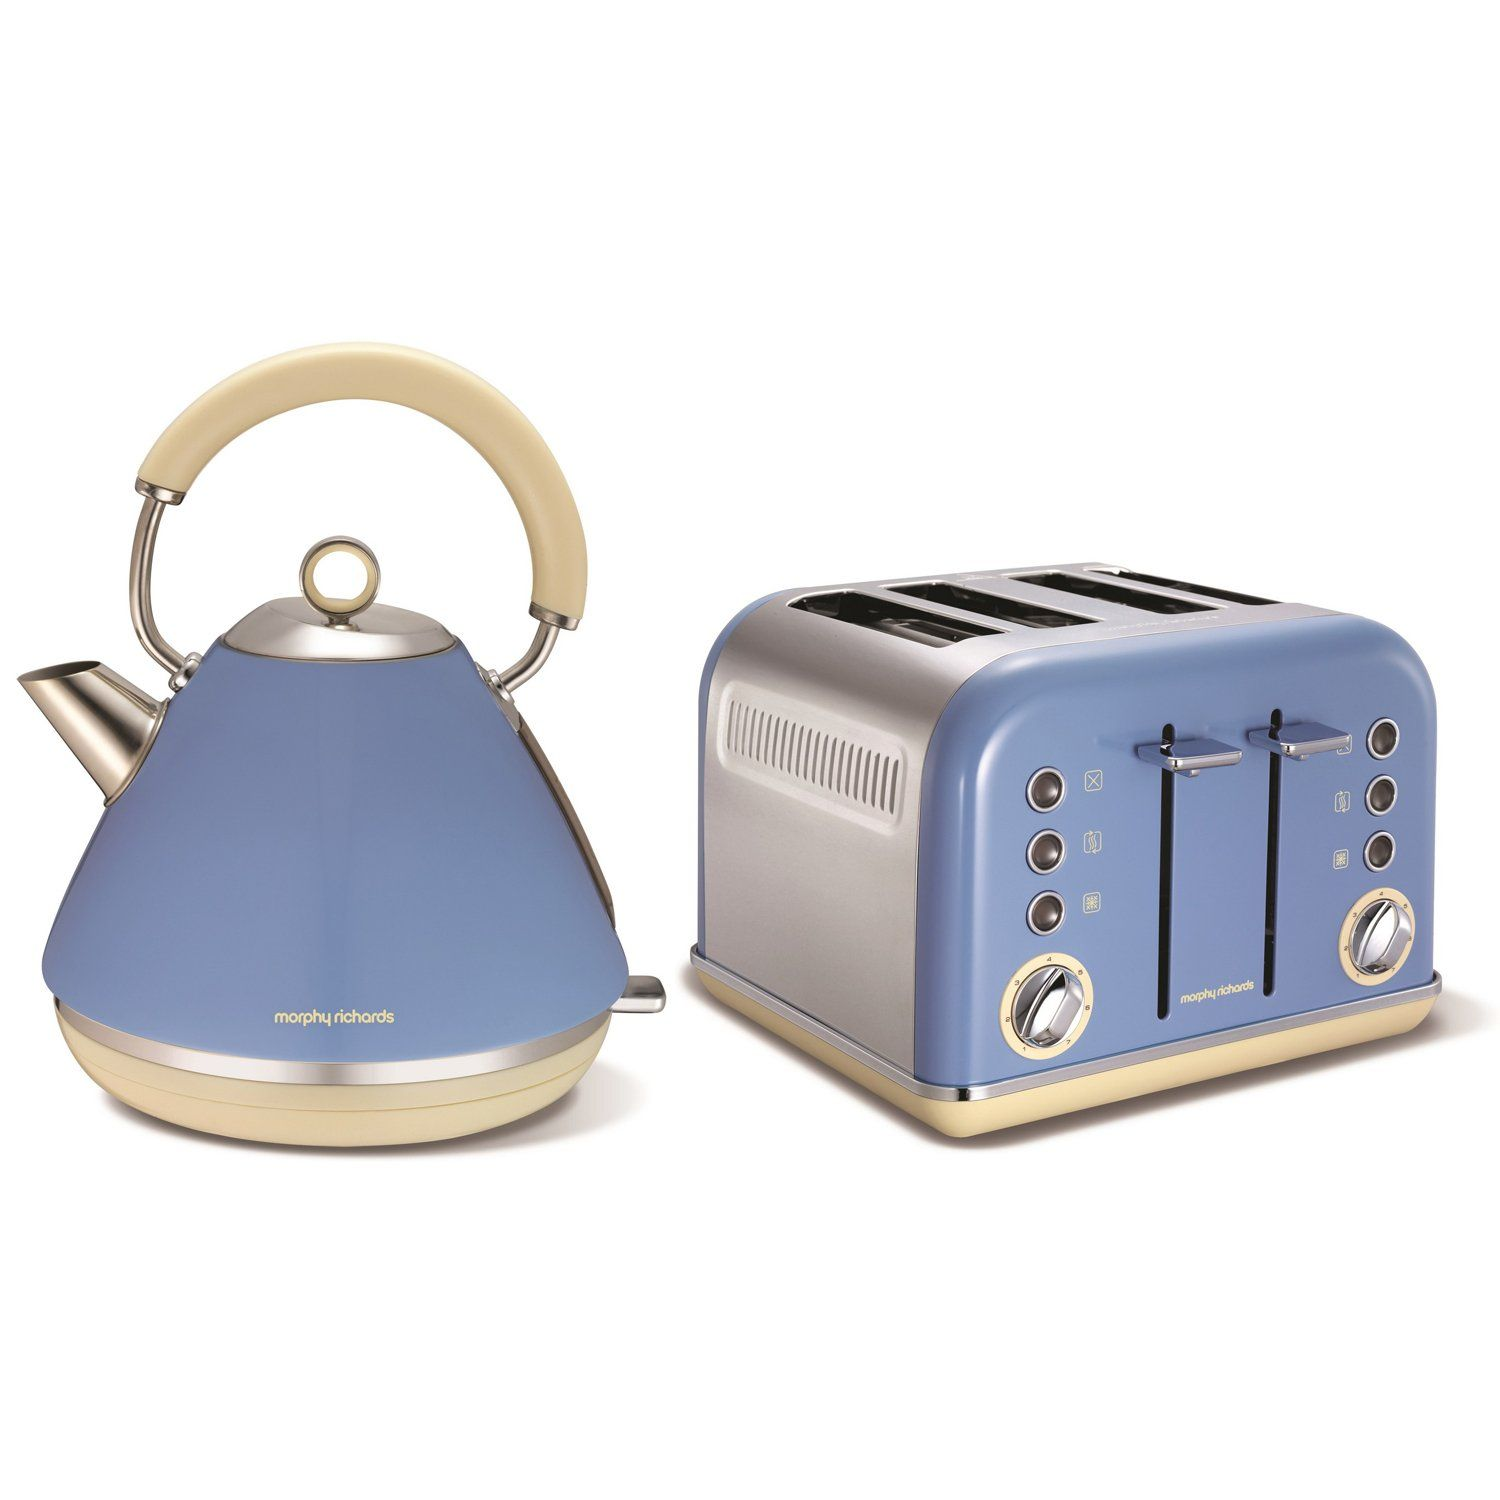 Morphy richards accents blue stainless steel kettle jug for Kitchen set kettle toaster microwave